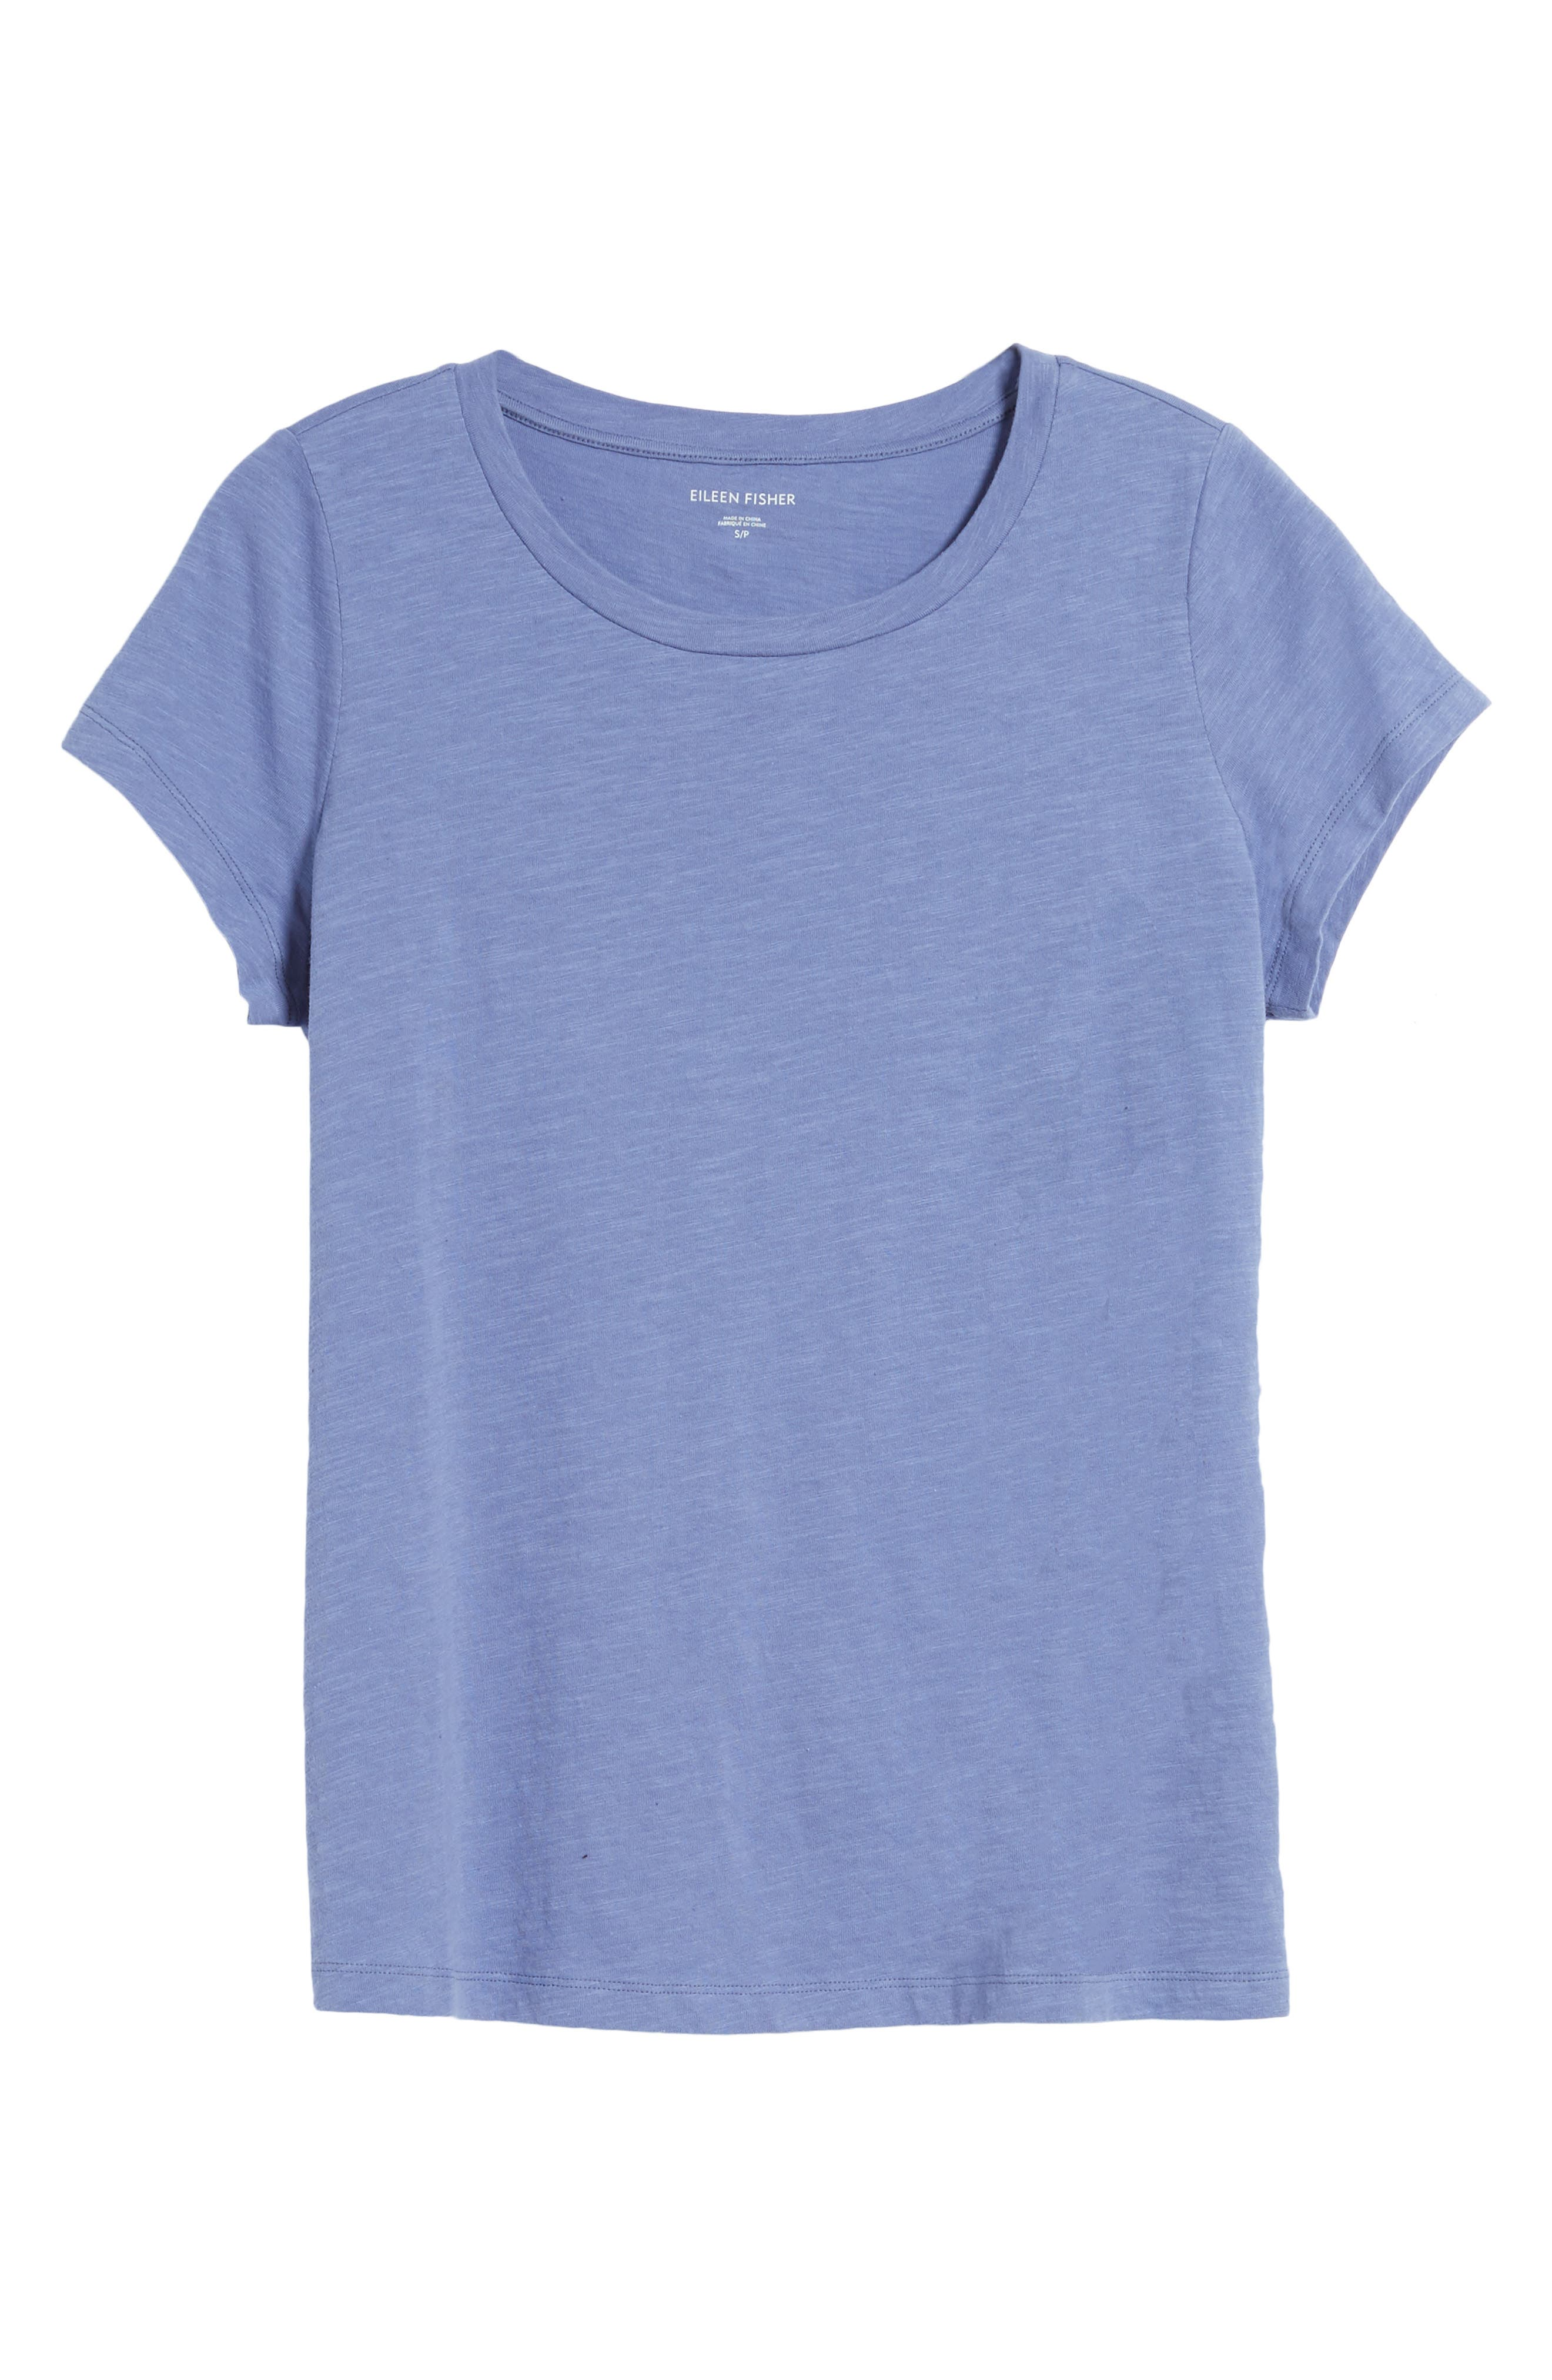 Organic Cotton Tee,                         Main,                         color, Periwinkle